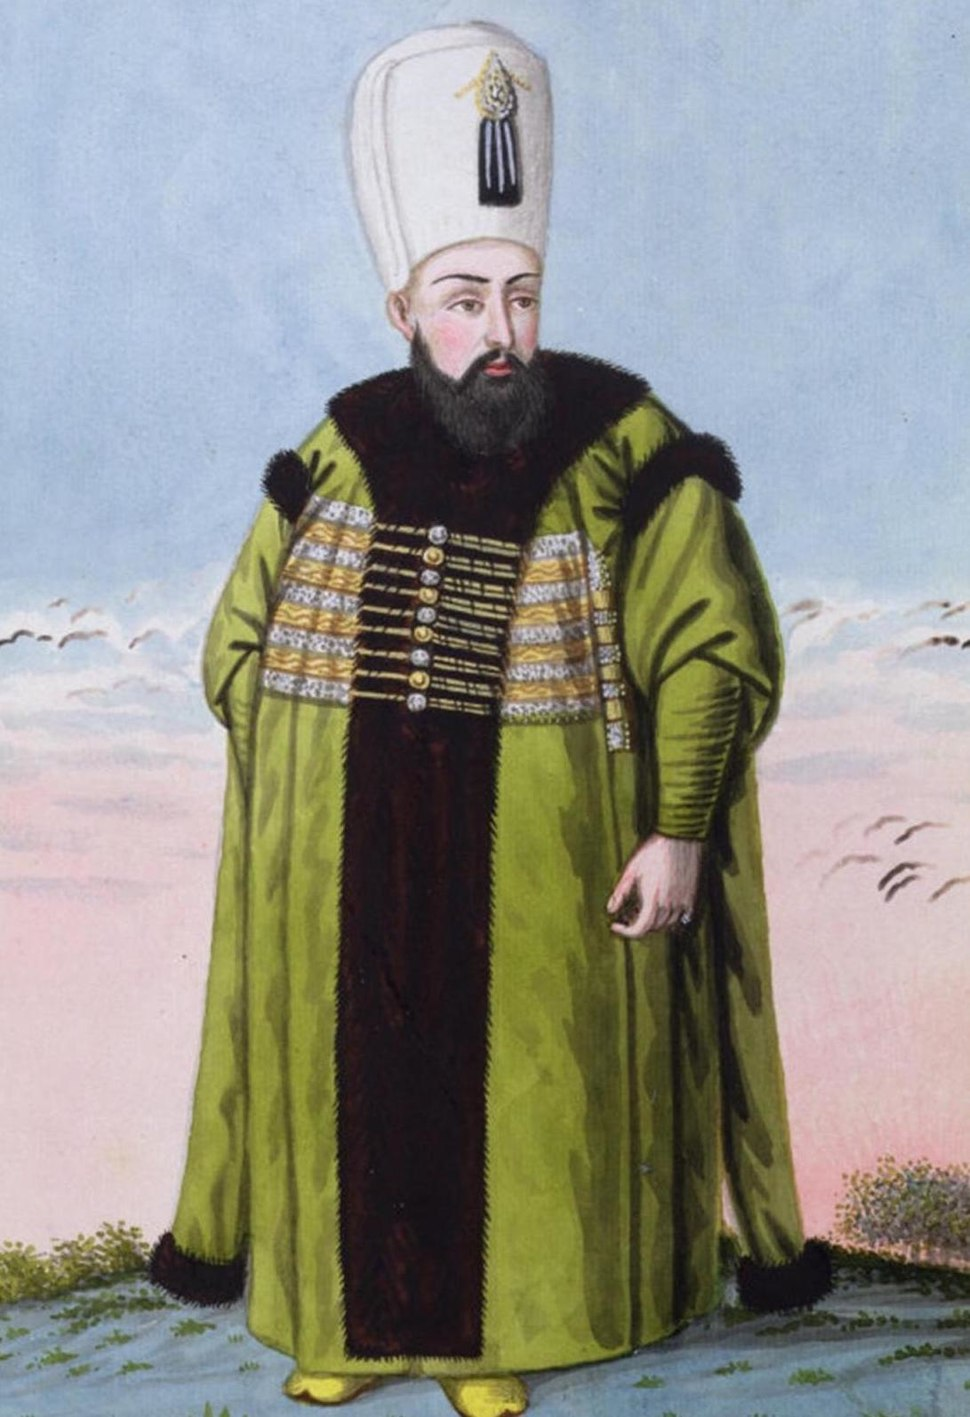 Ibrahim by John Young (cropped)